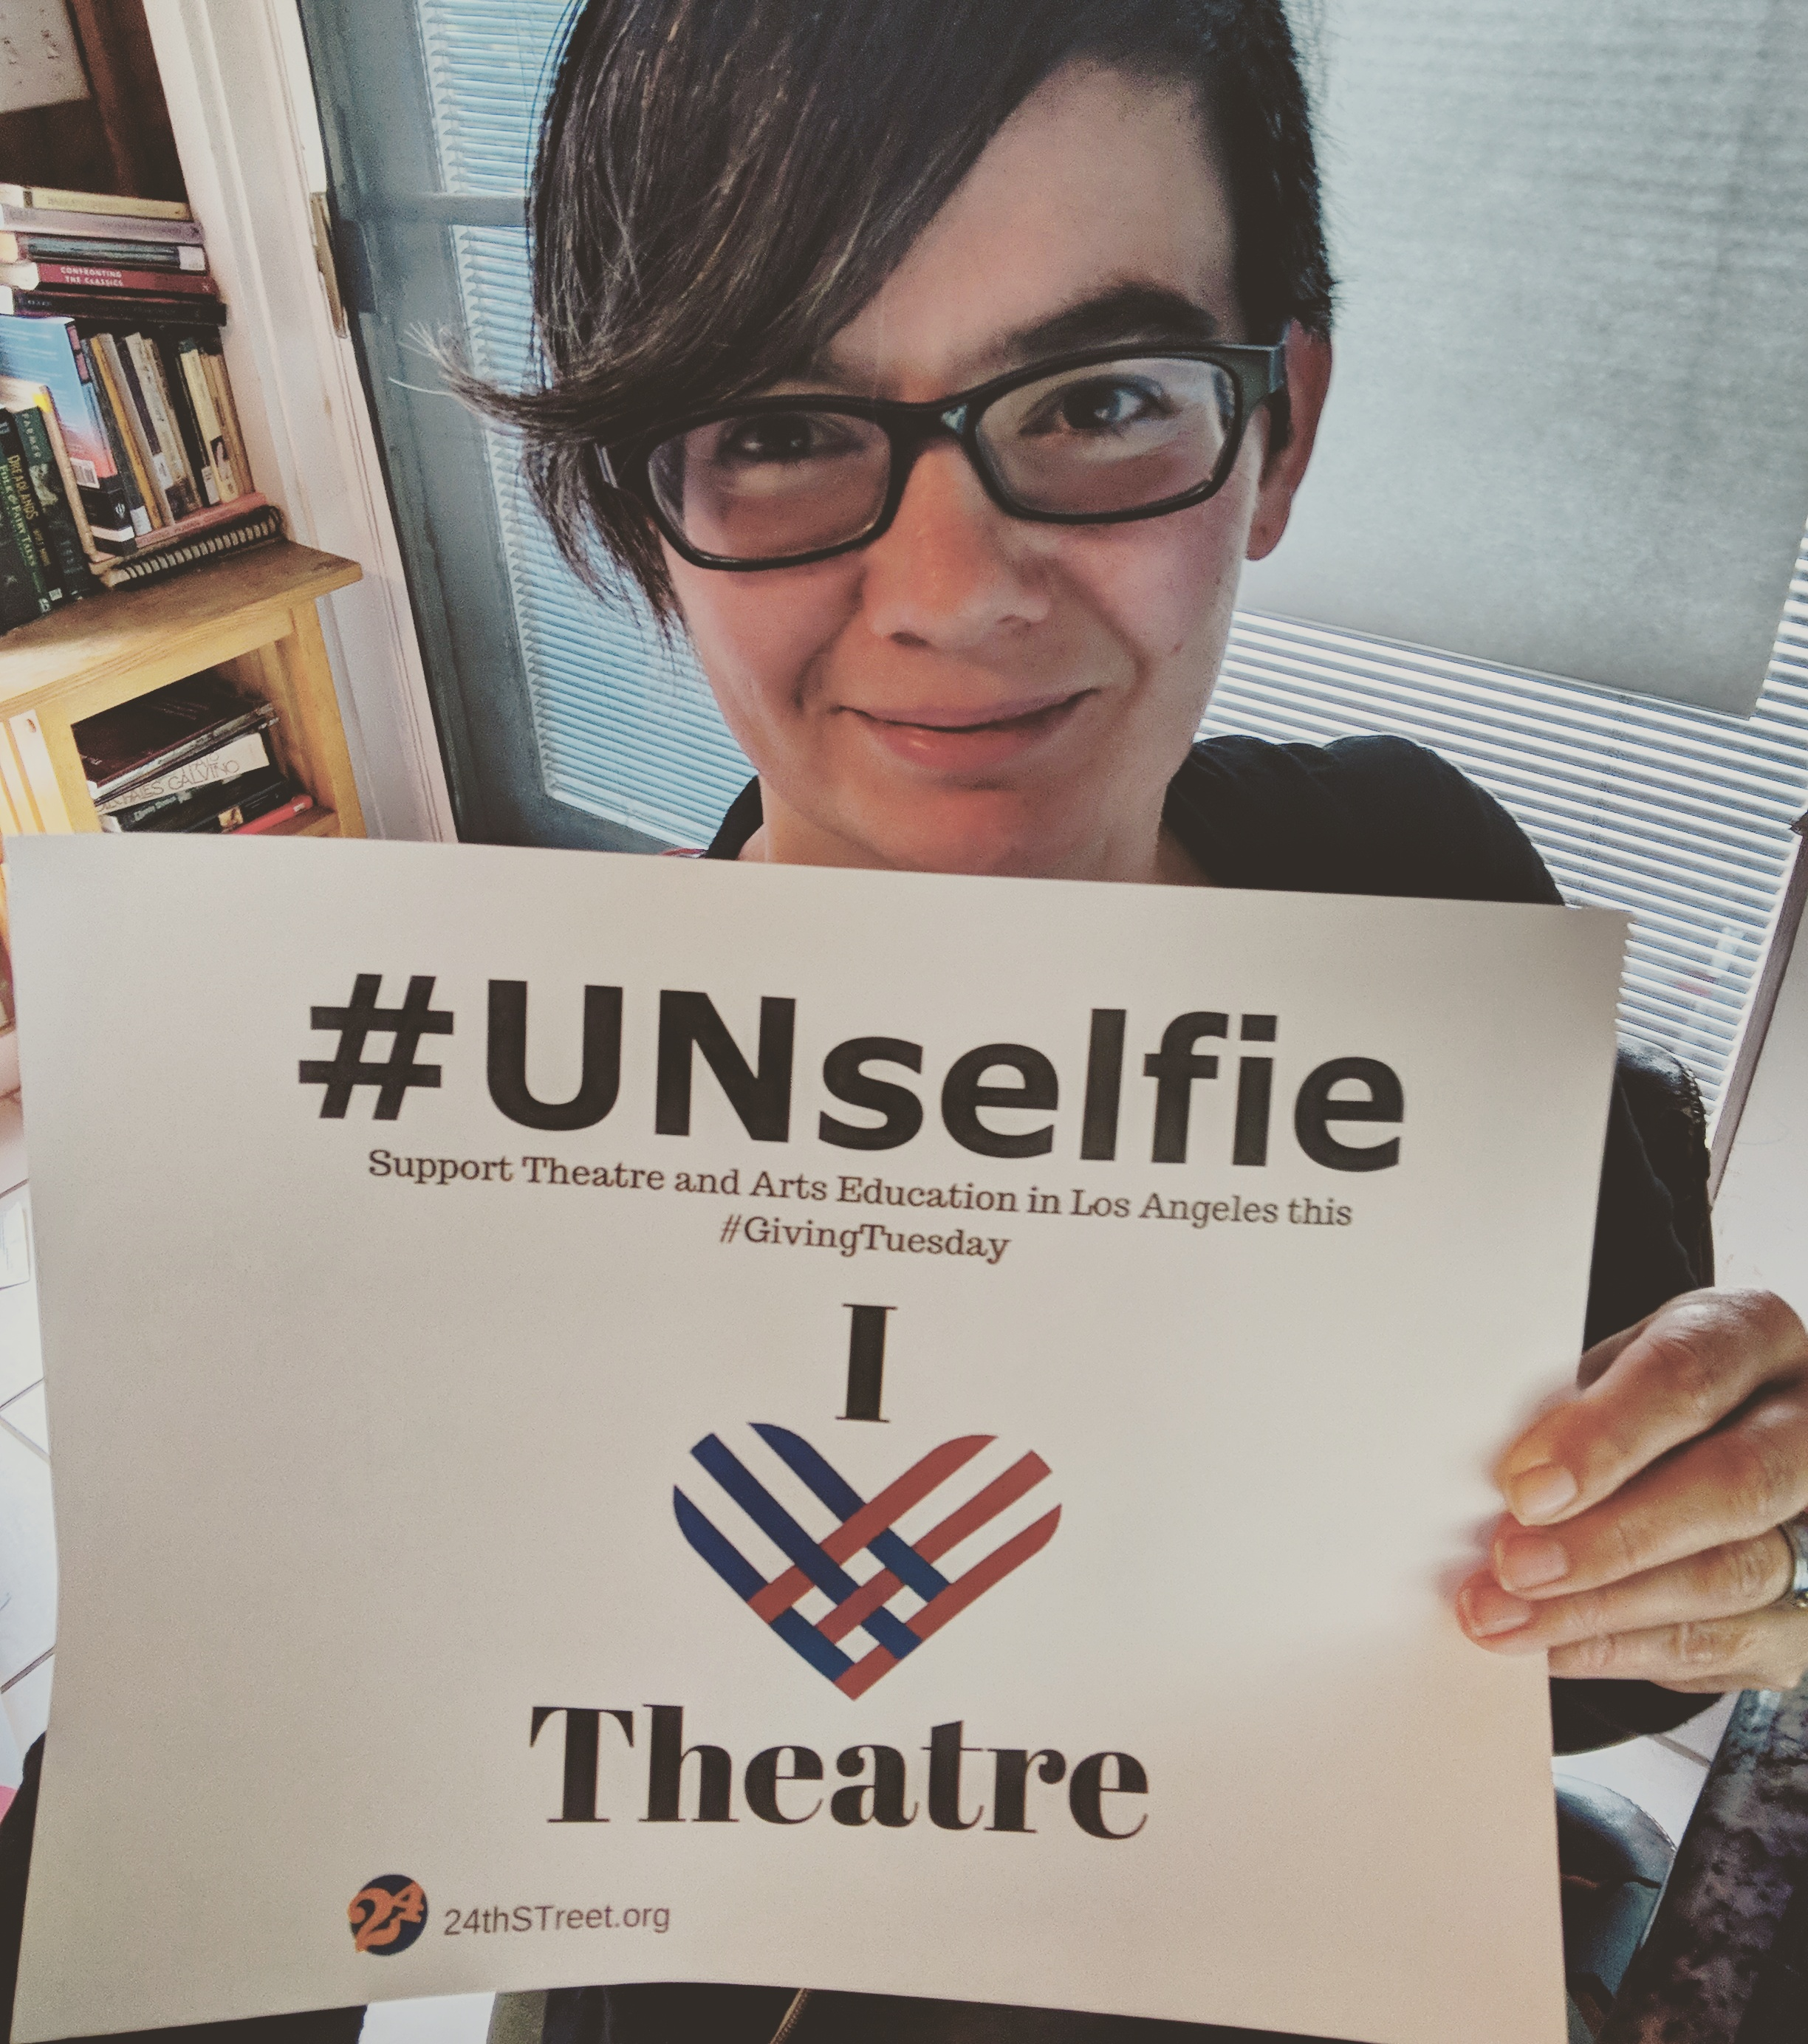 My 1st @UNselfie. Keep an eye out for more!